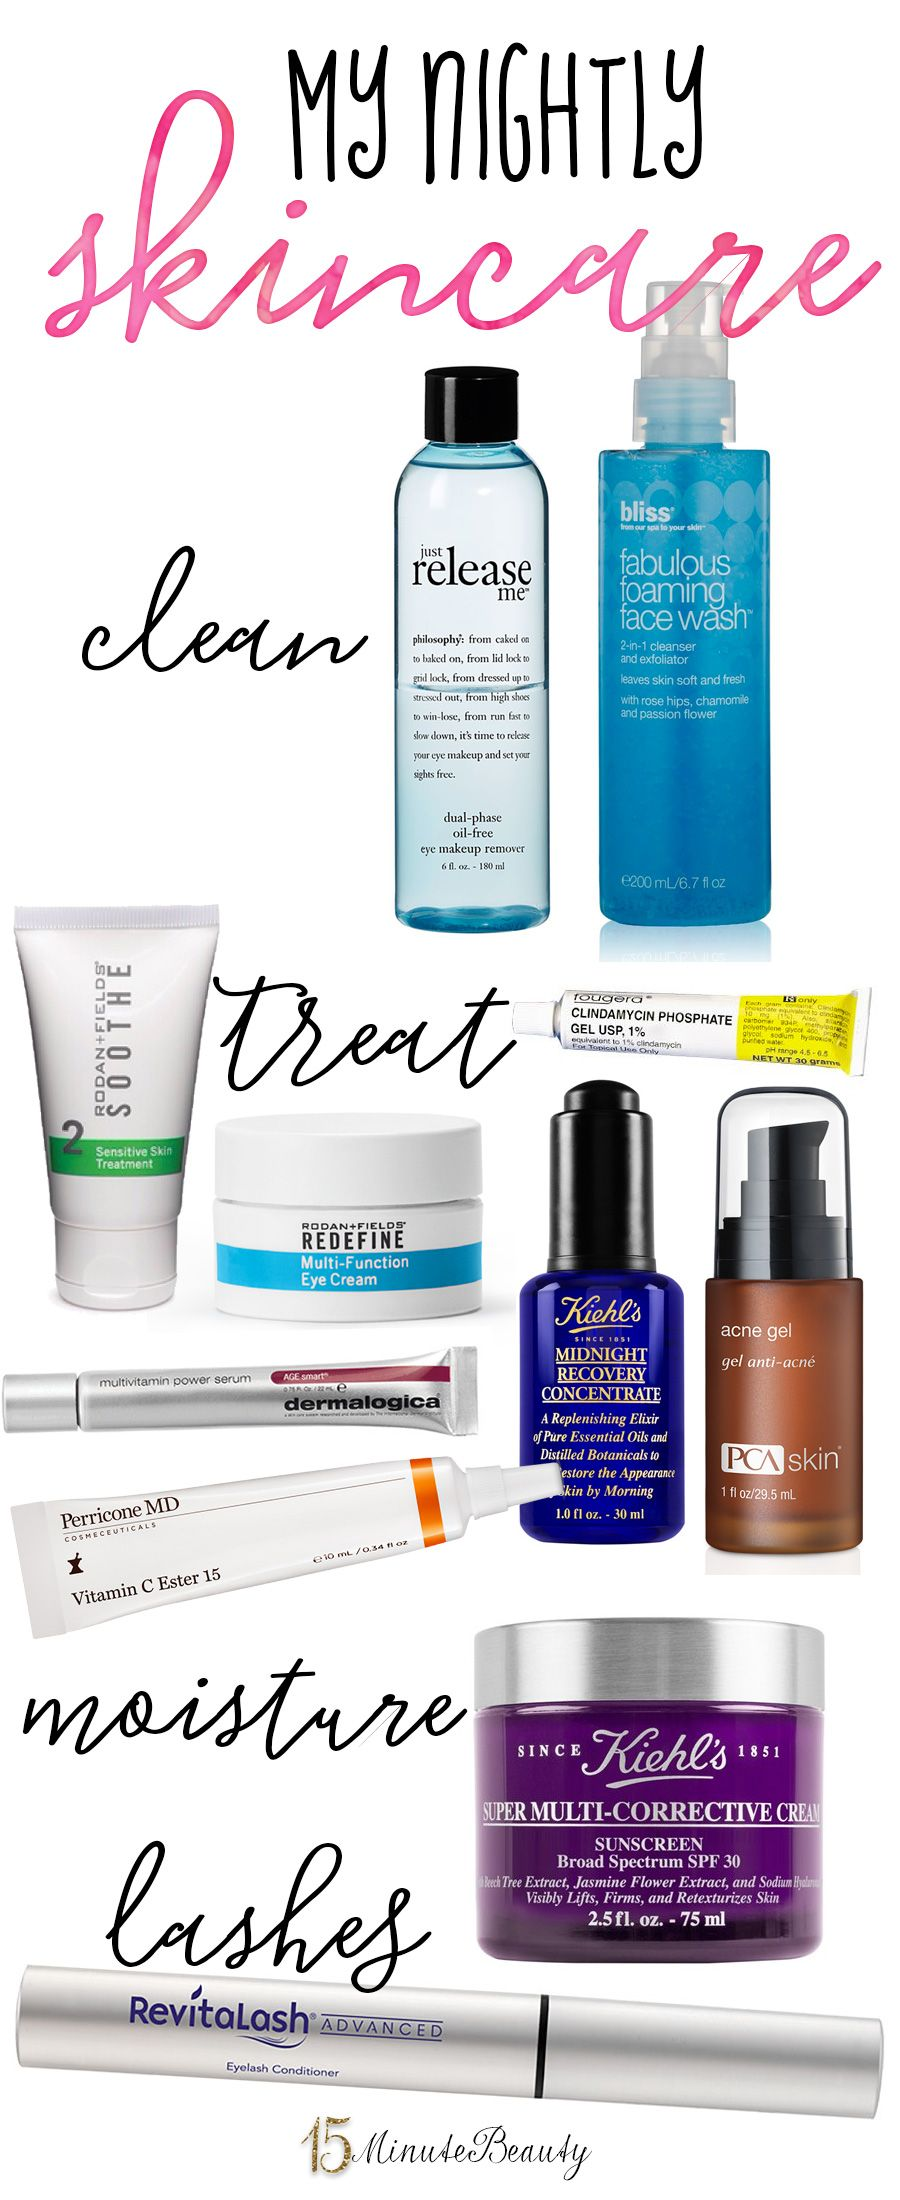 My Current Nightly Skincare Routine With Images Skin Care